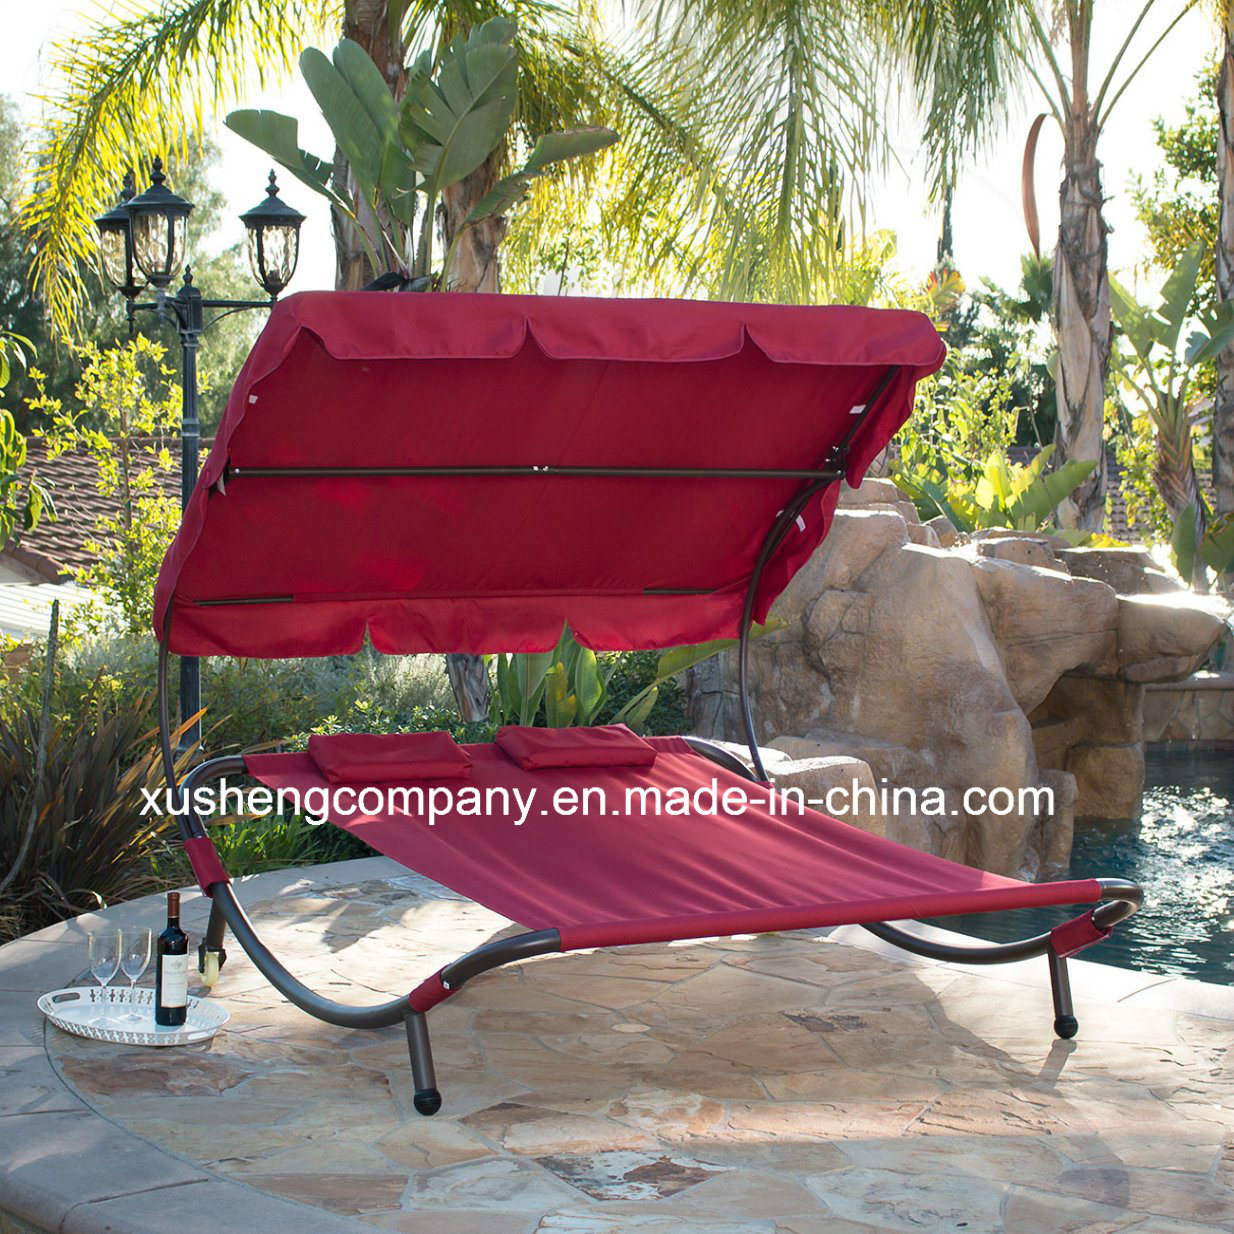 Patio Garden Swing Chair/Bed with Sunshade